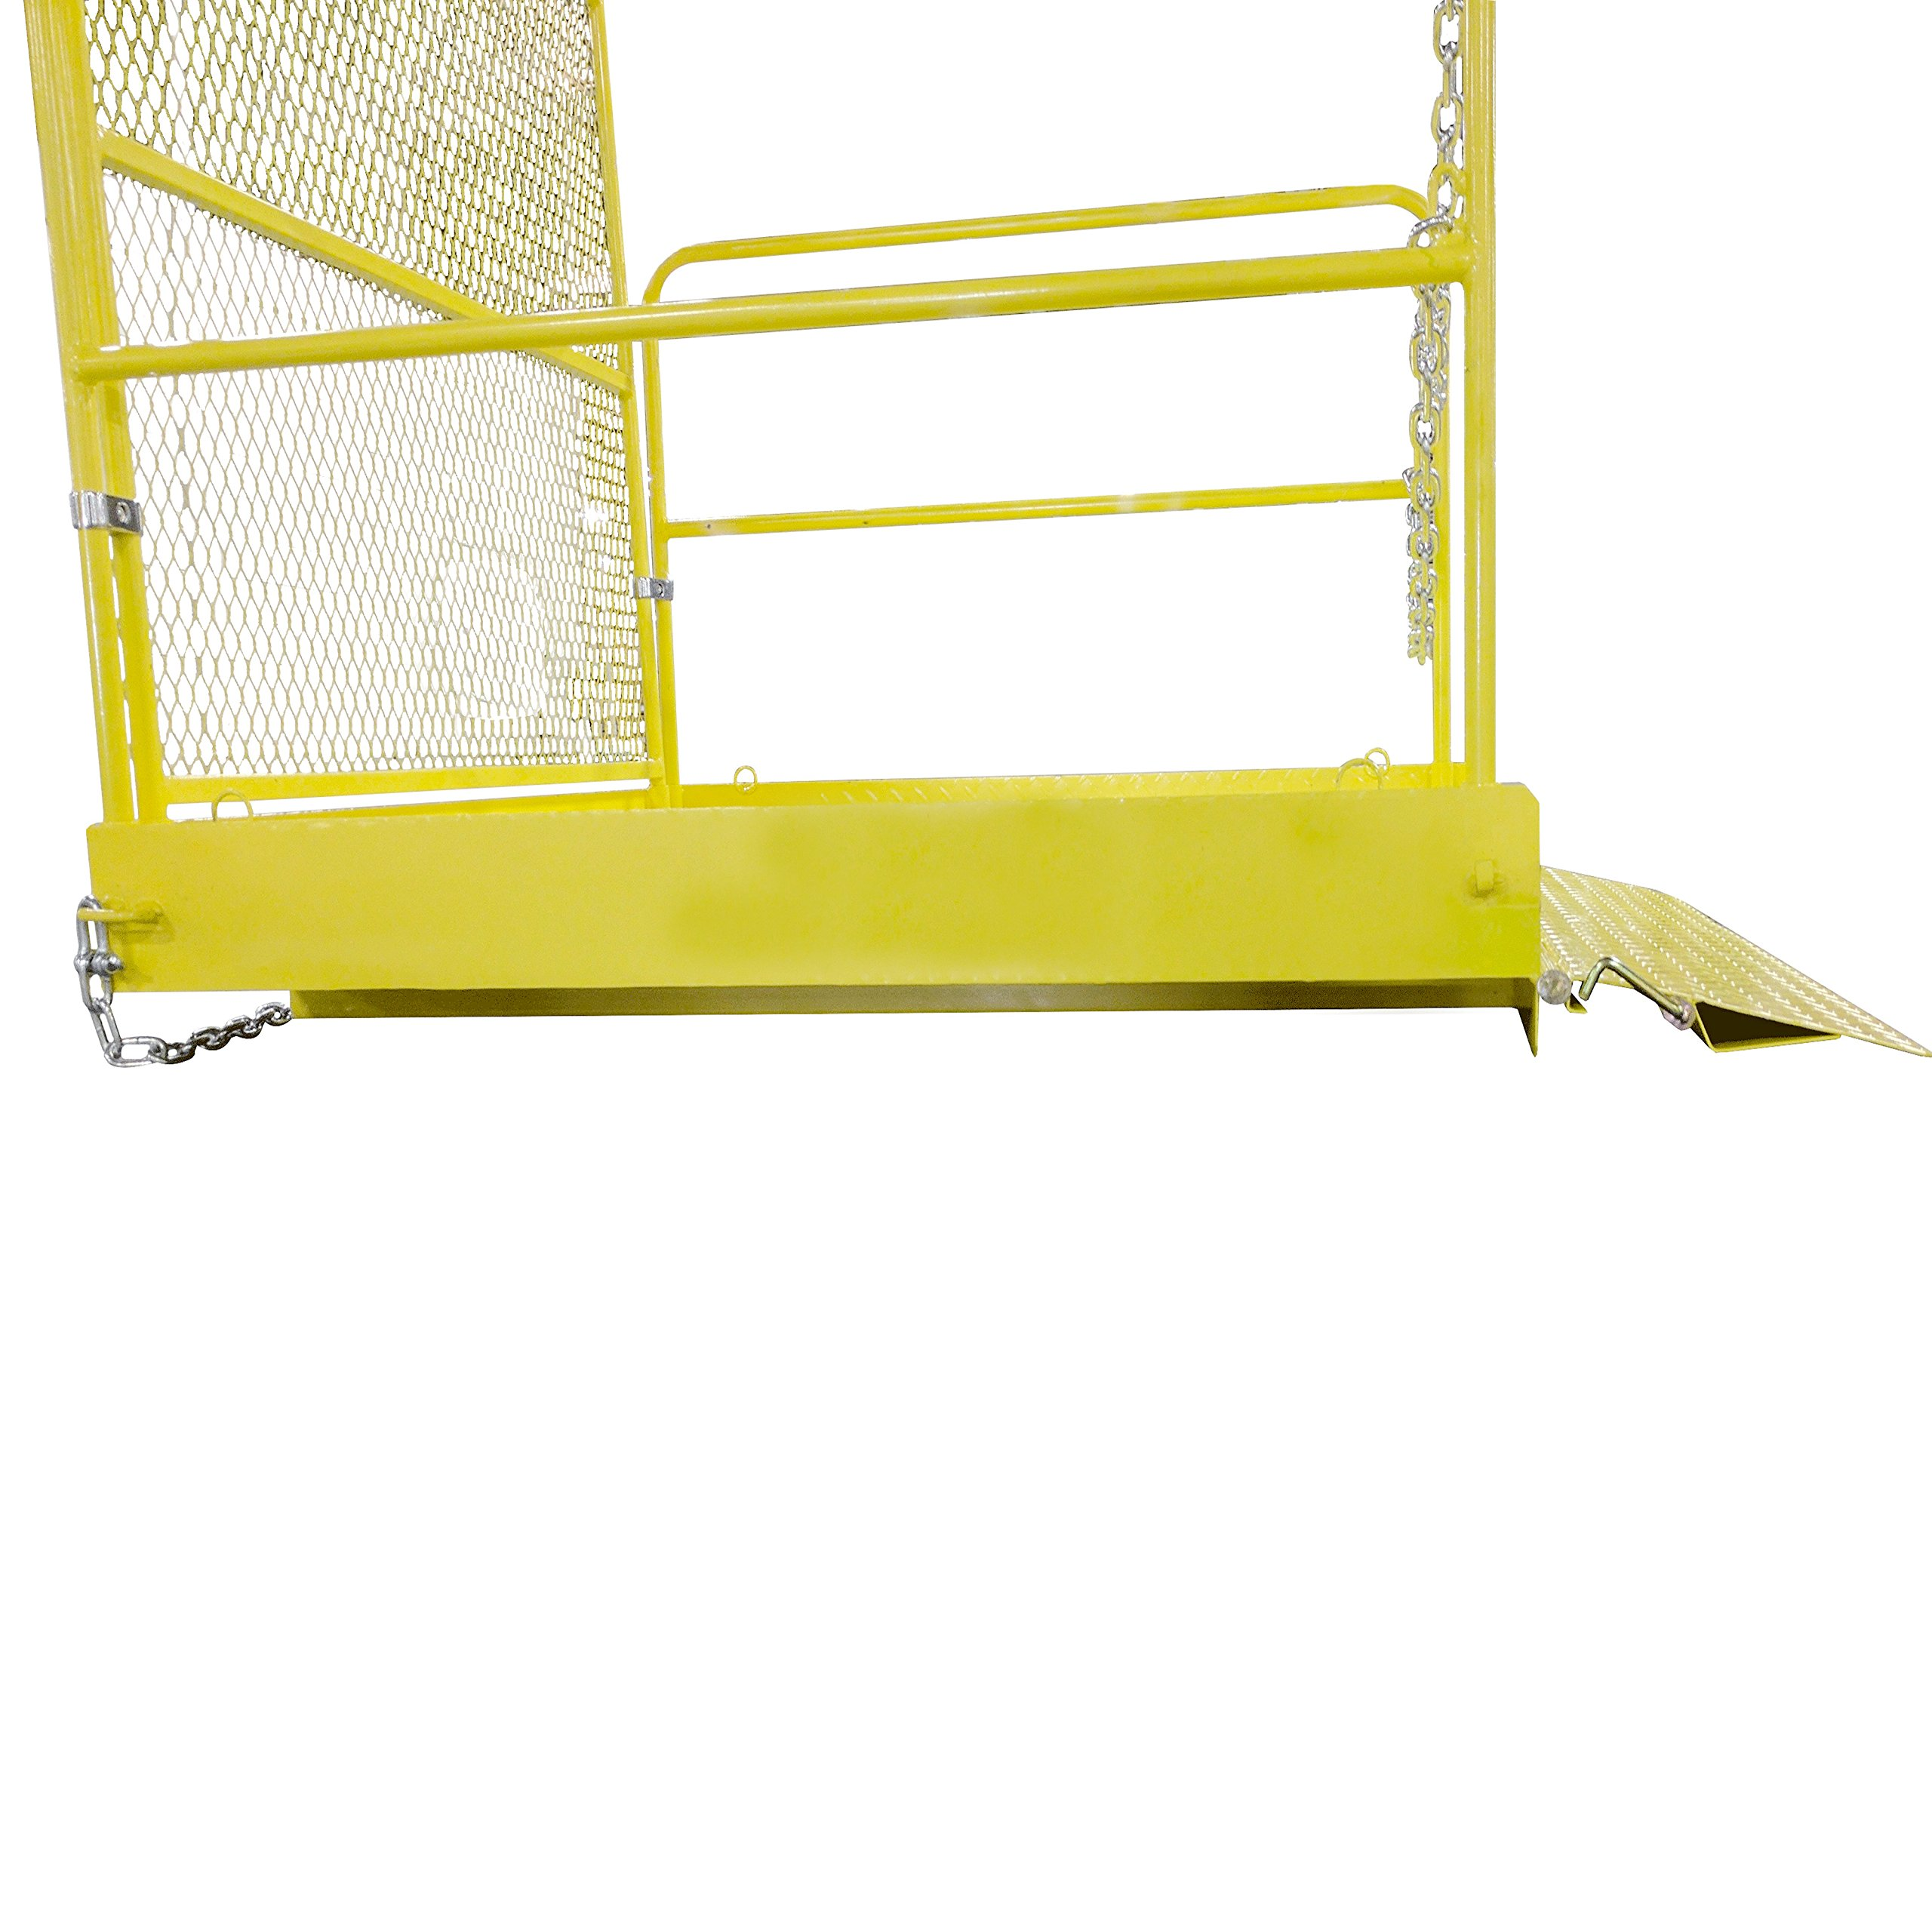 54'' x 54'' Loading Work Platform w/ Handrails - 2,000 LB Capacity by Titan Attachments (Image #4)